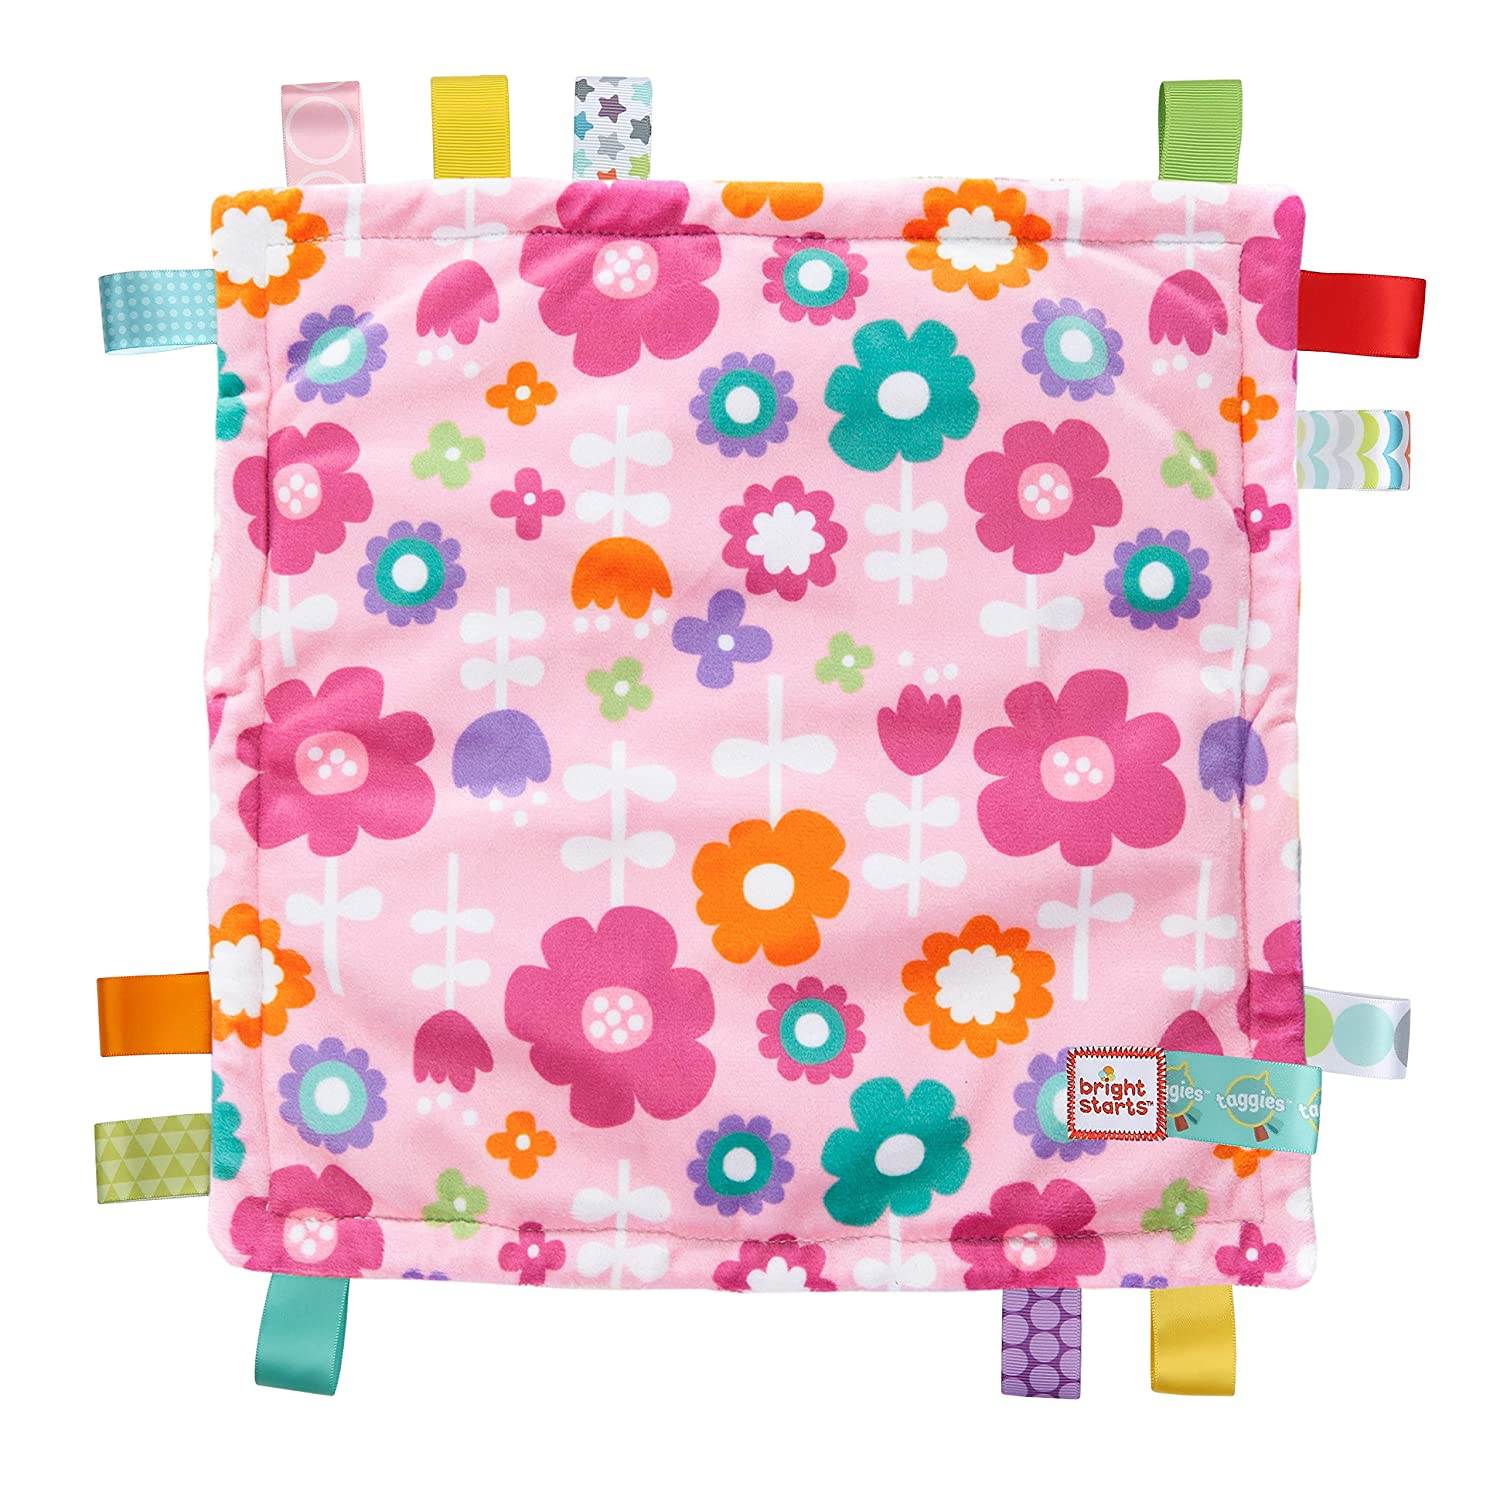 Taggies Colors Blanket, Pink Flowers and Butterflies, Discontinued By Manufacturer Bright Starts